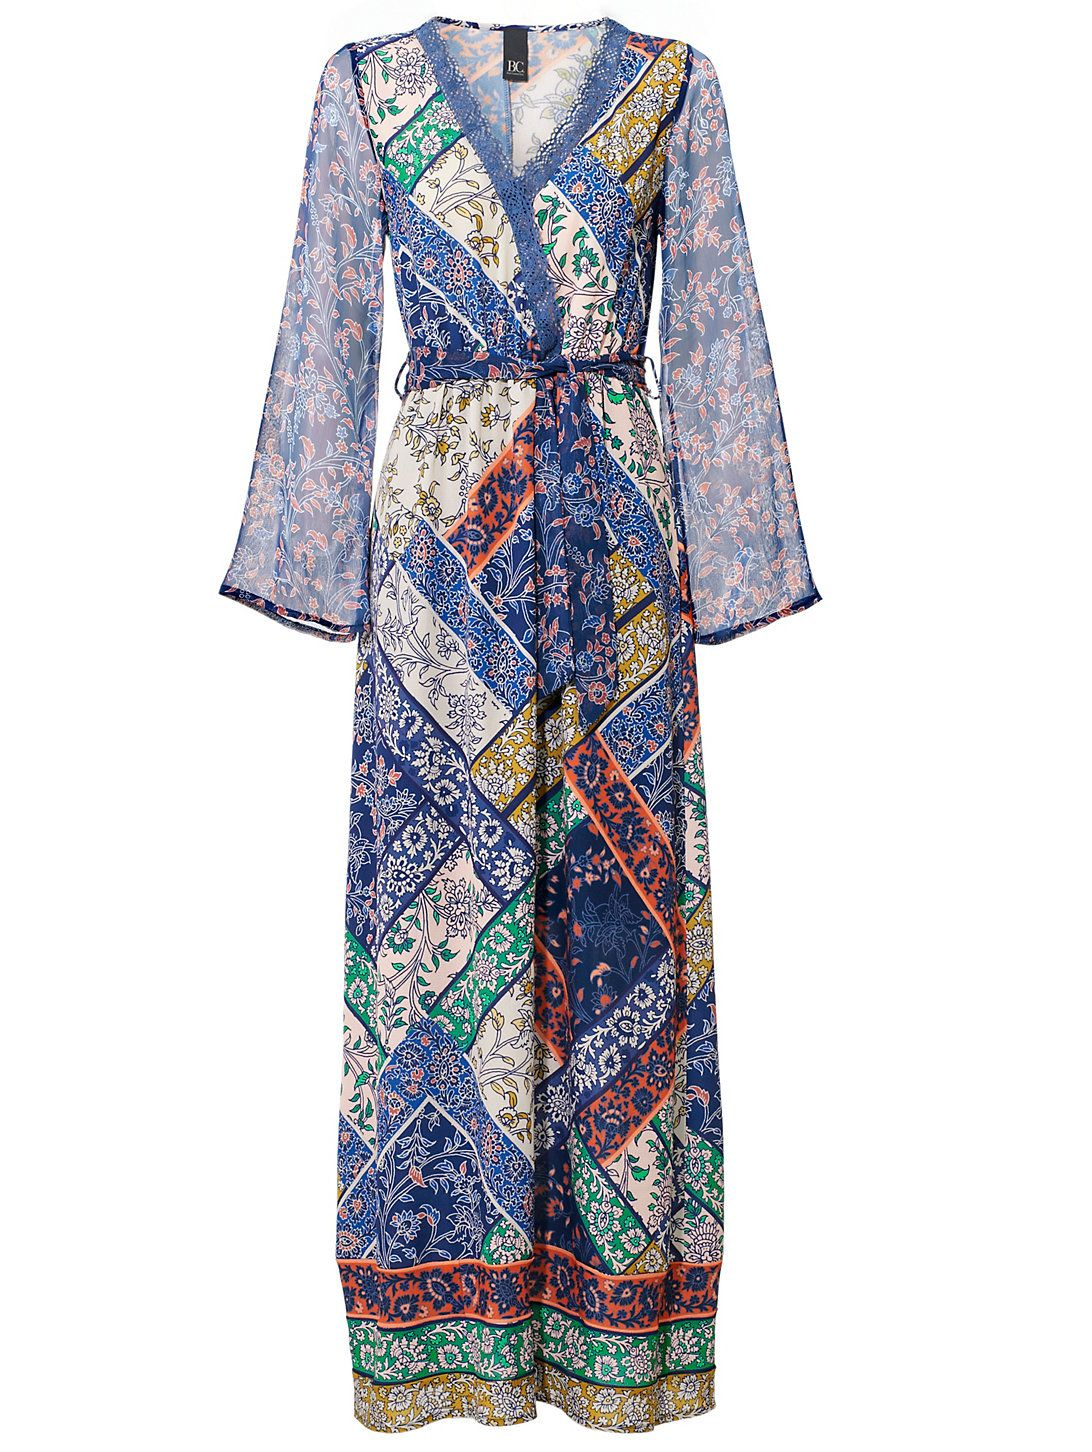 b963de2afe0b24 B.C. Best Connections by heine Impriméjurk multicolour blauw print blue  maxi dress maxi jurk